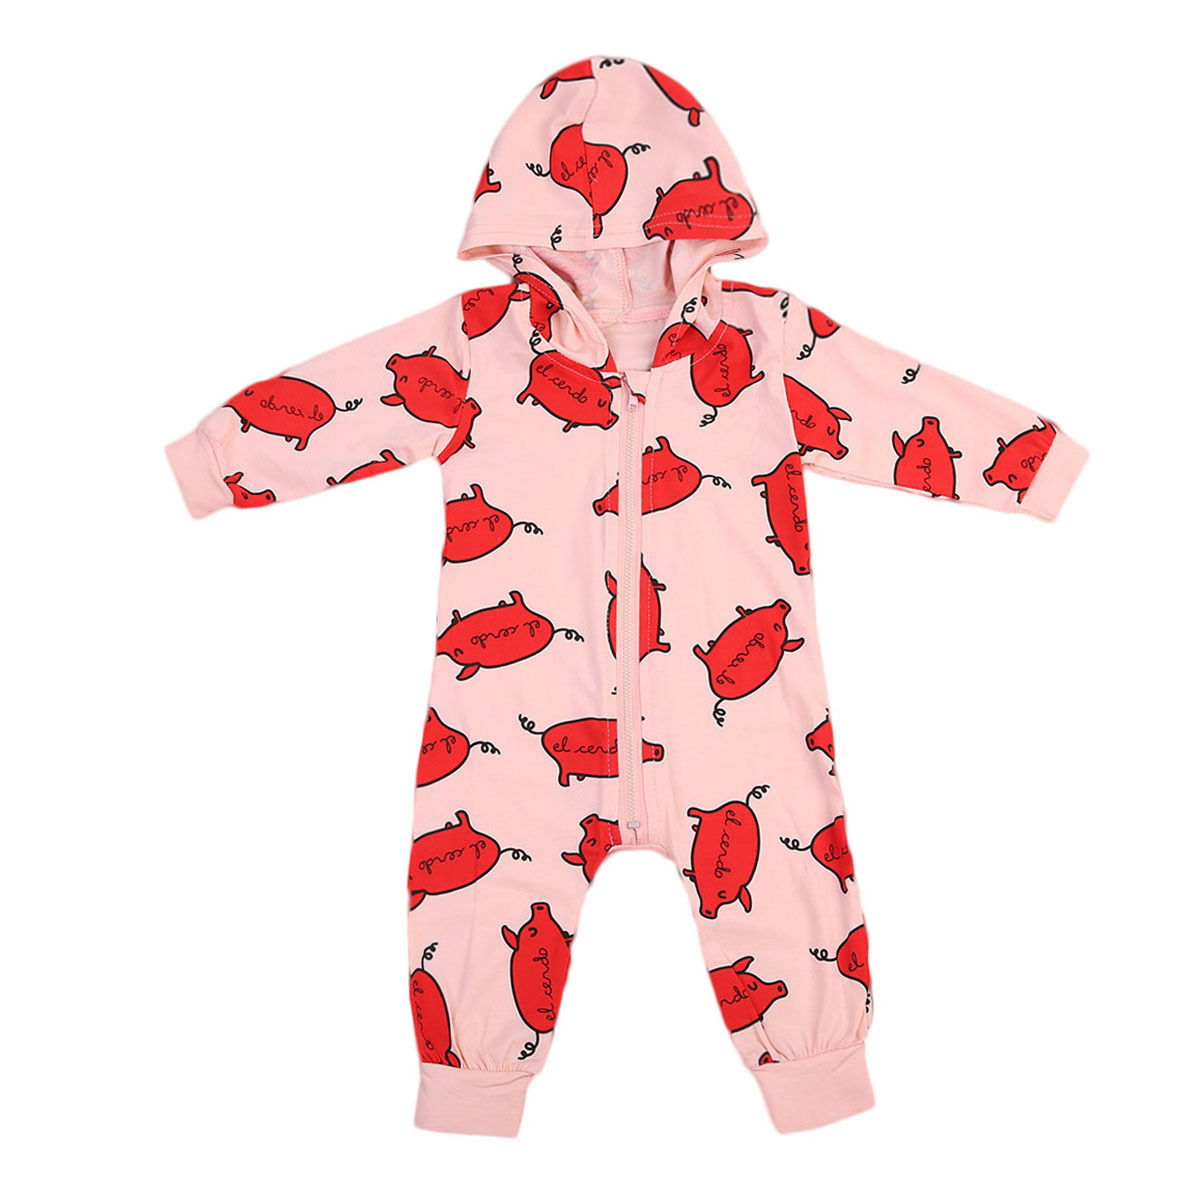 Summer Newborn Baby Clothes Unisex Cotton Zipper Pig Hooded Rompers Girls Boys Clothing Outfits Pink baby boys girls clothes newborn bebe rompers costume short sleeve ropa de bebe 100%cotton clothing 5pcs lot unisex 0 9months